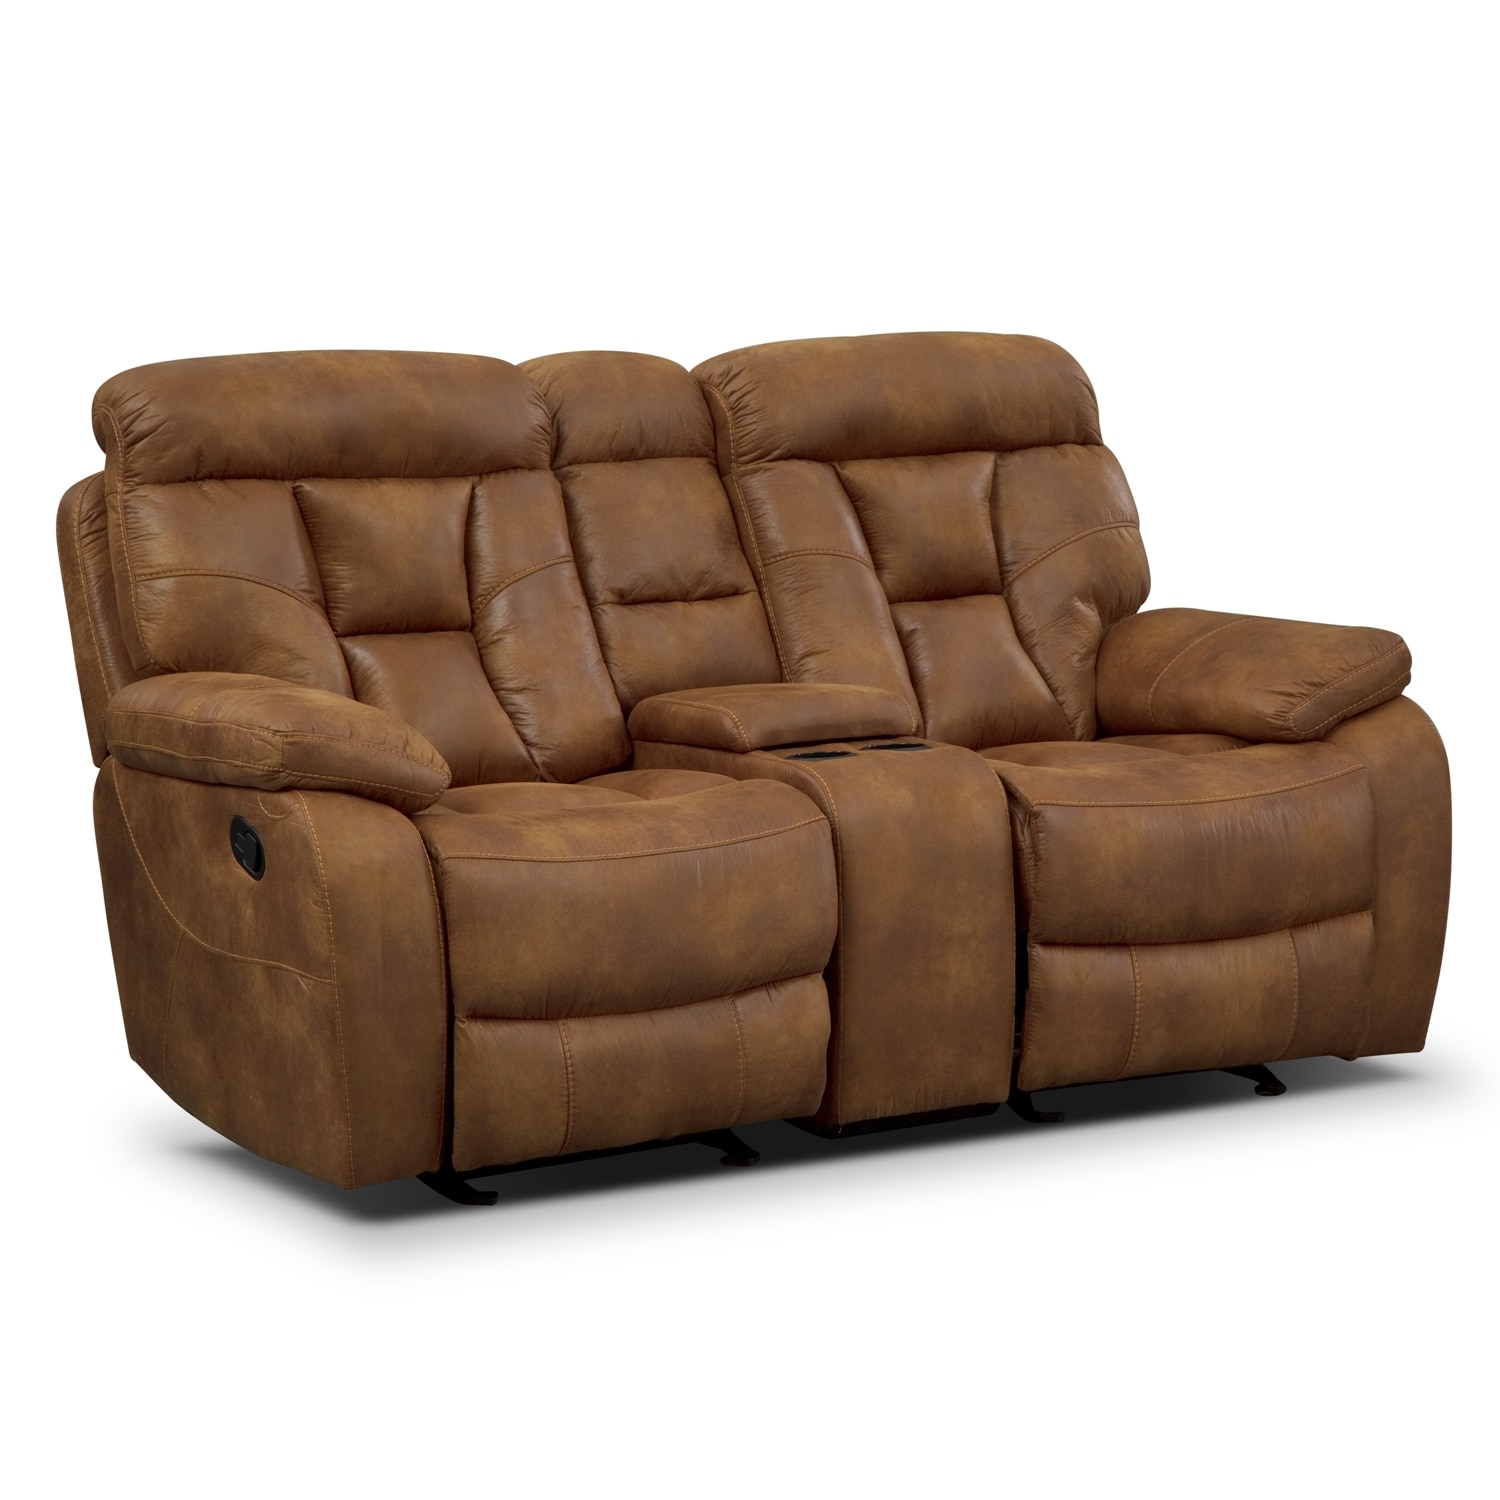 Loveseats Living Room Seating Value City Furniture